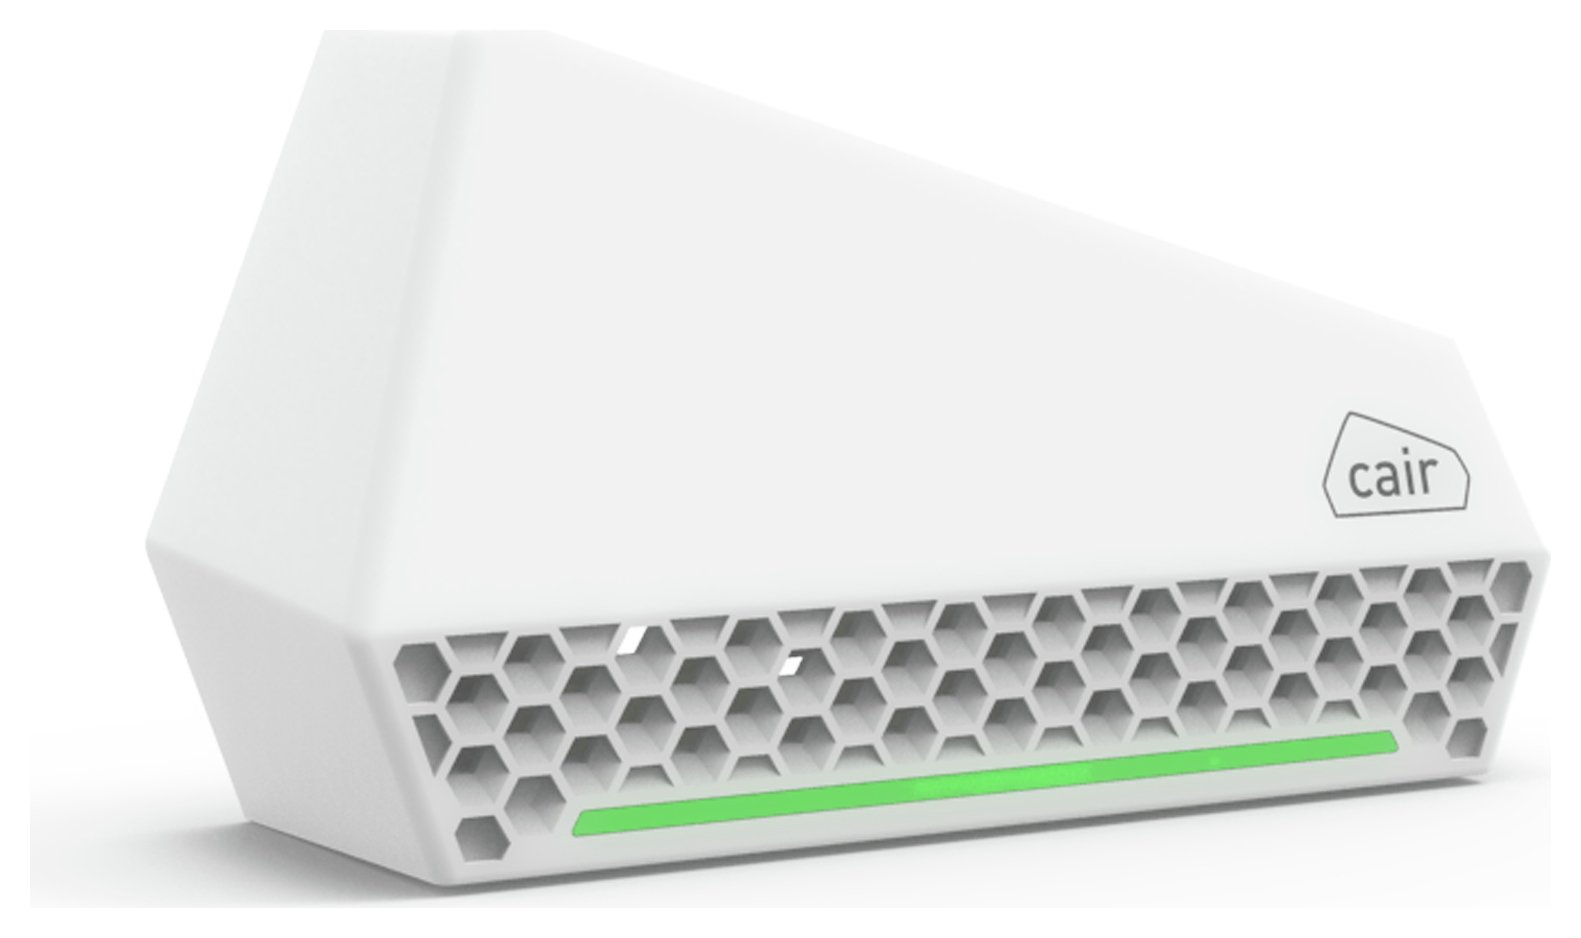 Image of Cair Smart Air Quality Sensor.